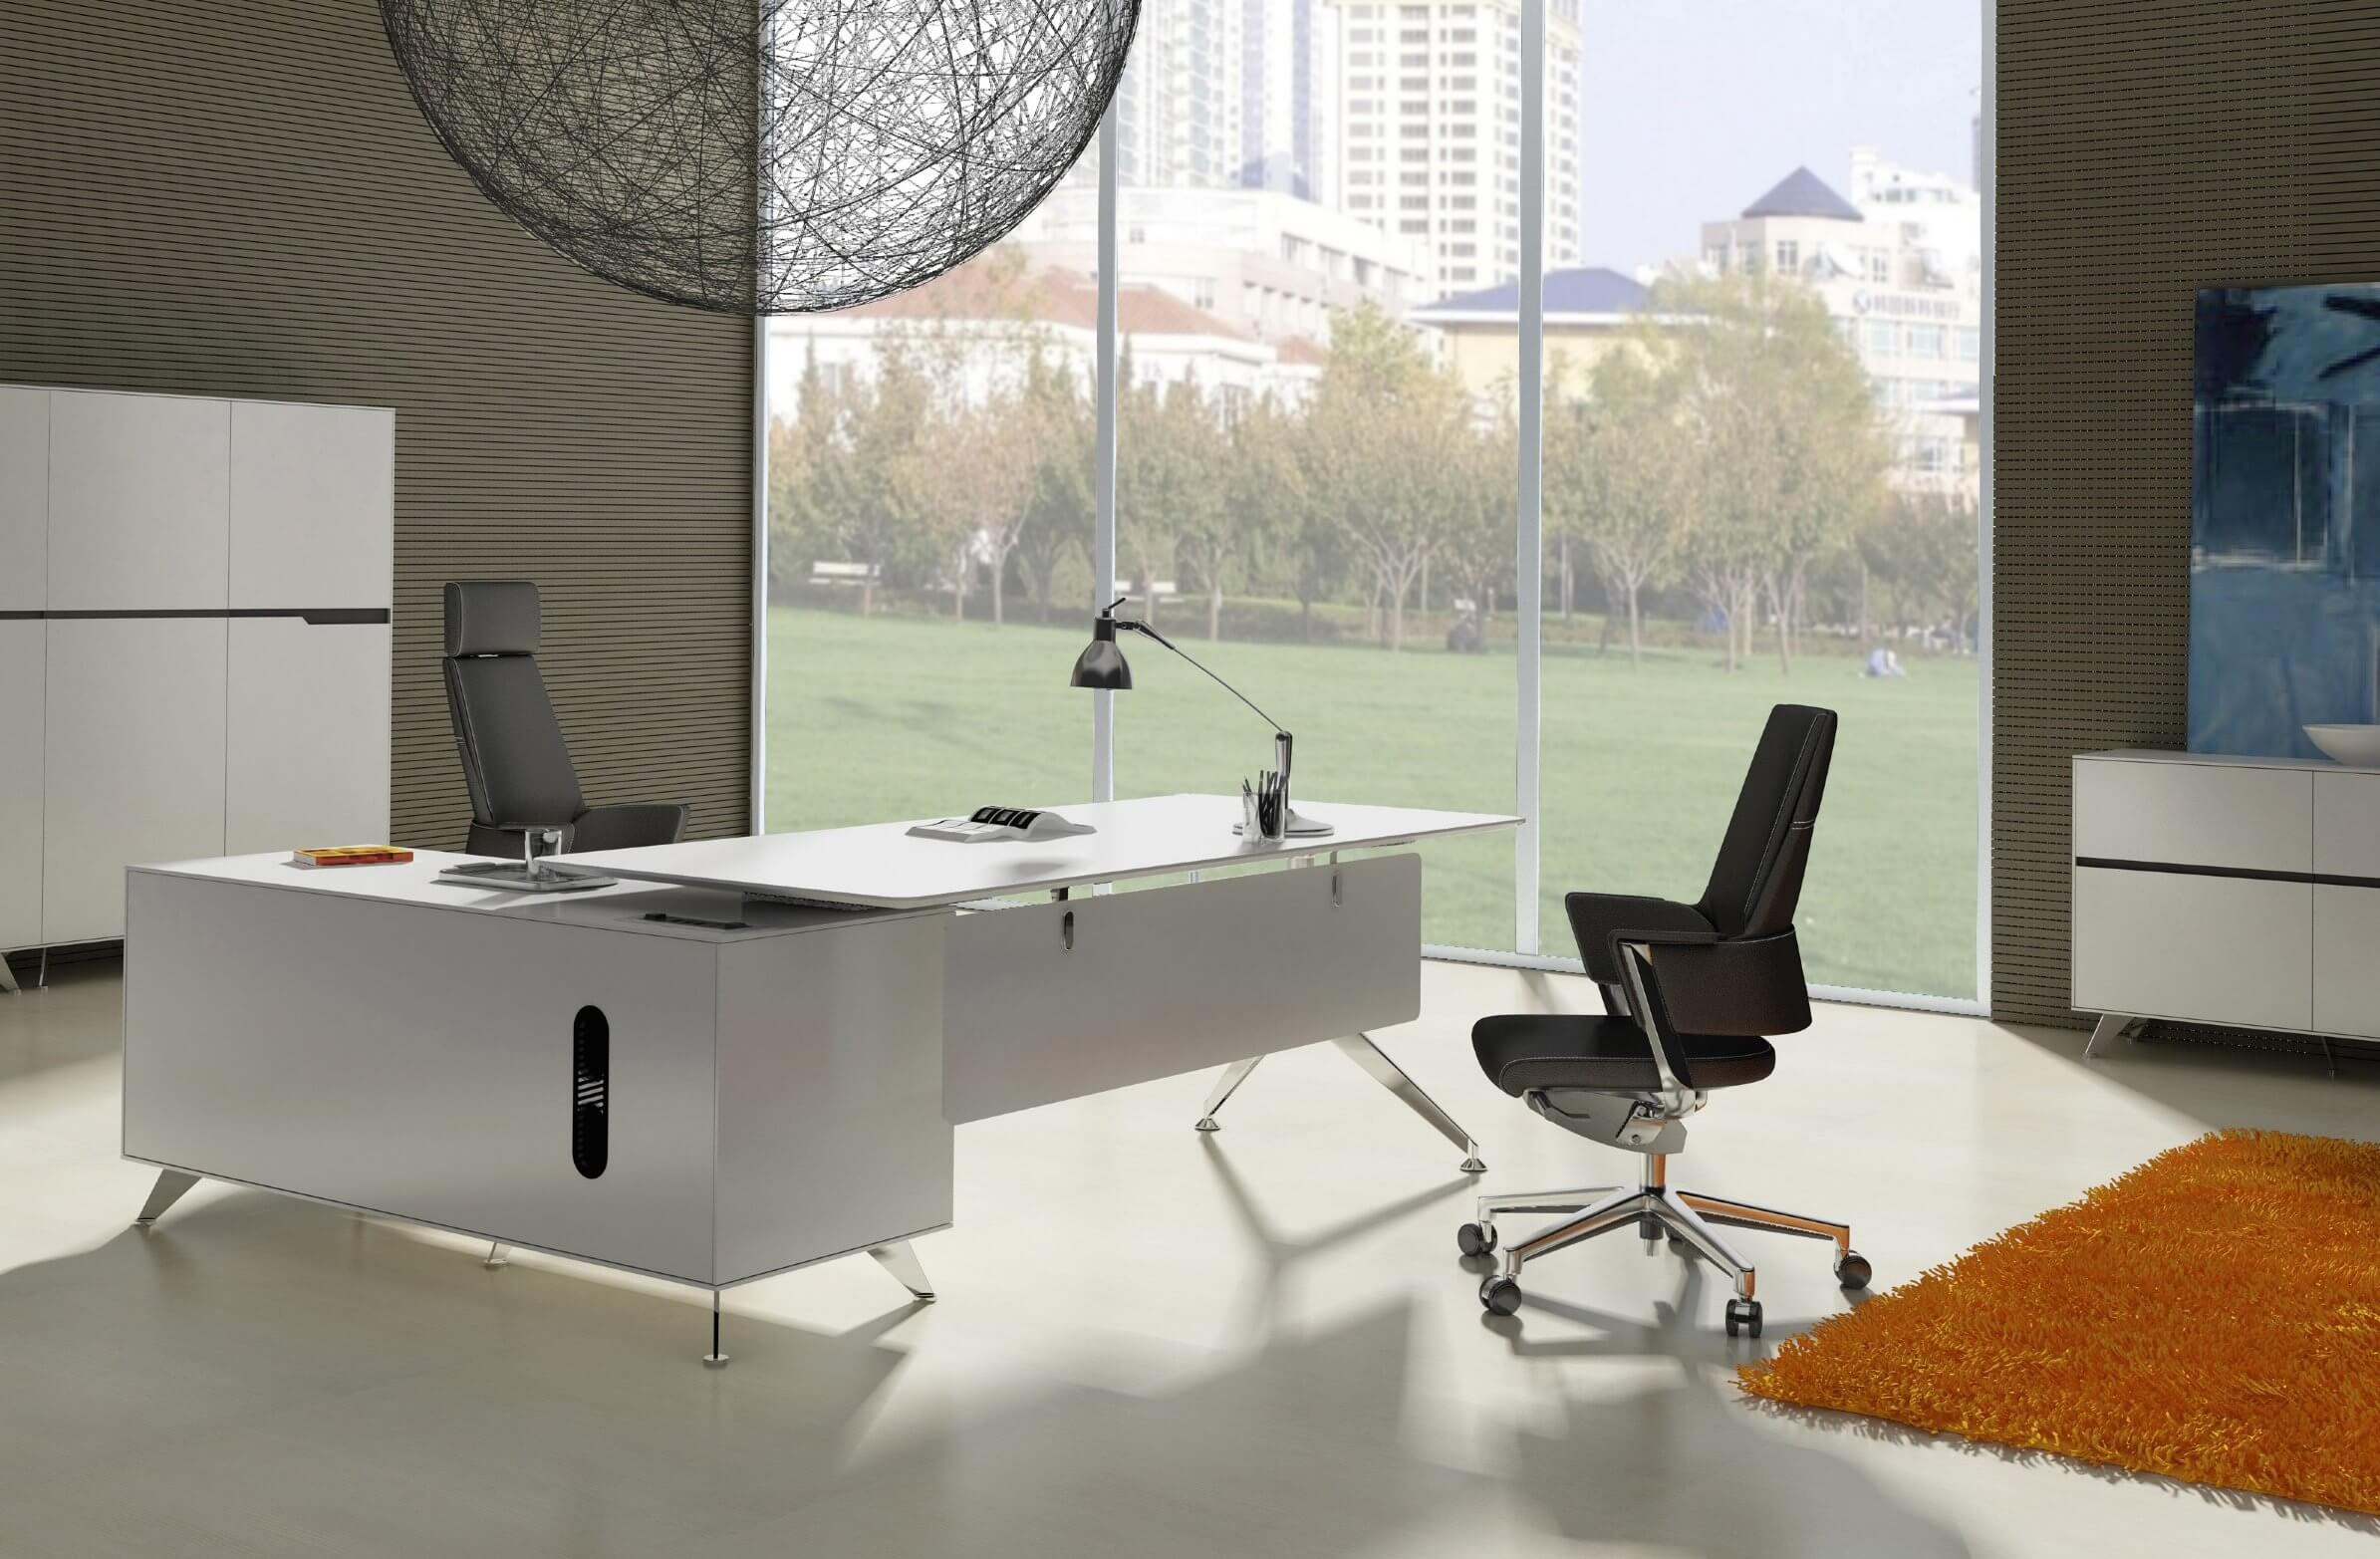 White Office Desk 17 Different Types Of Desks 2019 Desk Buying Guide